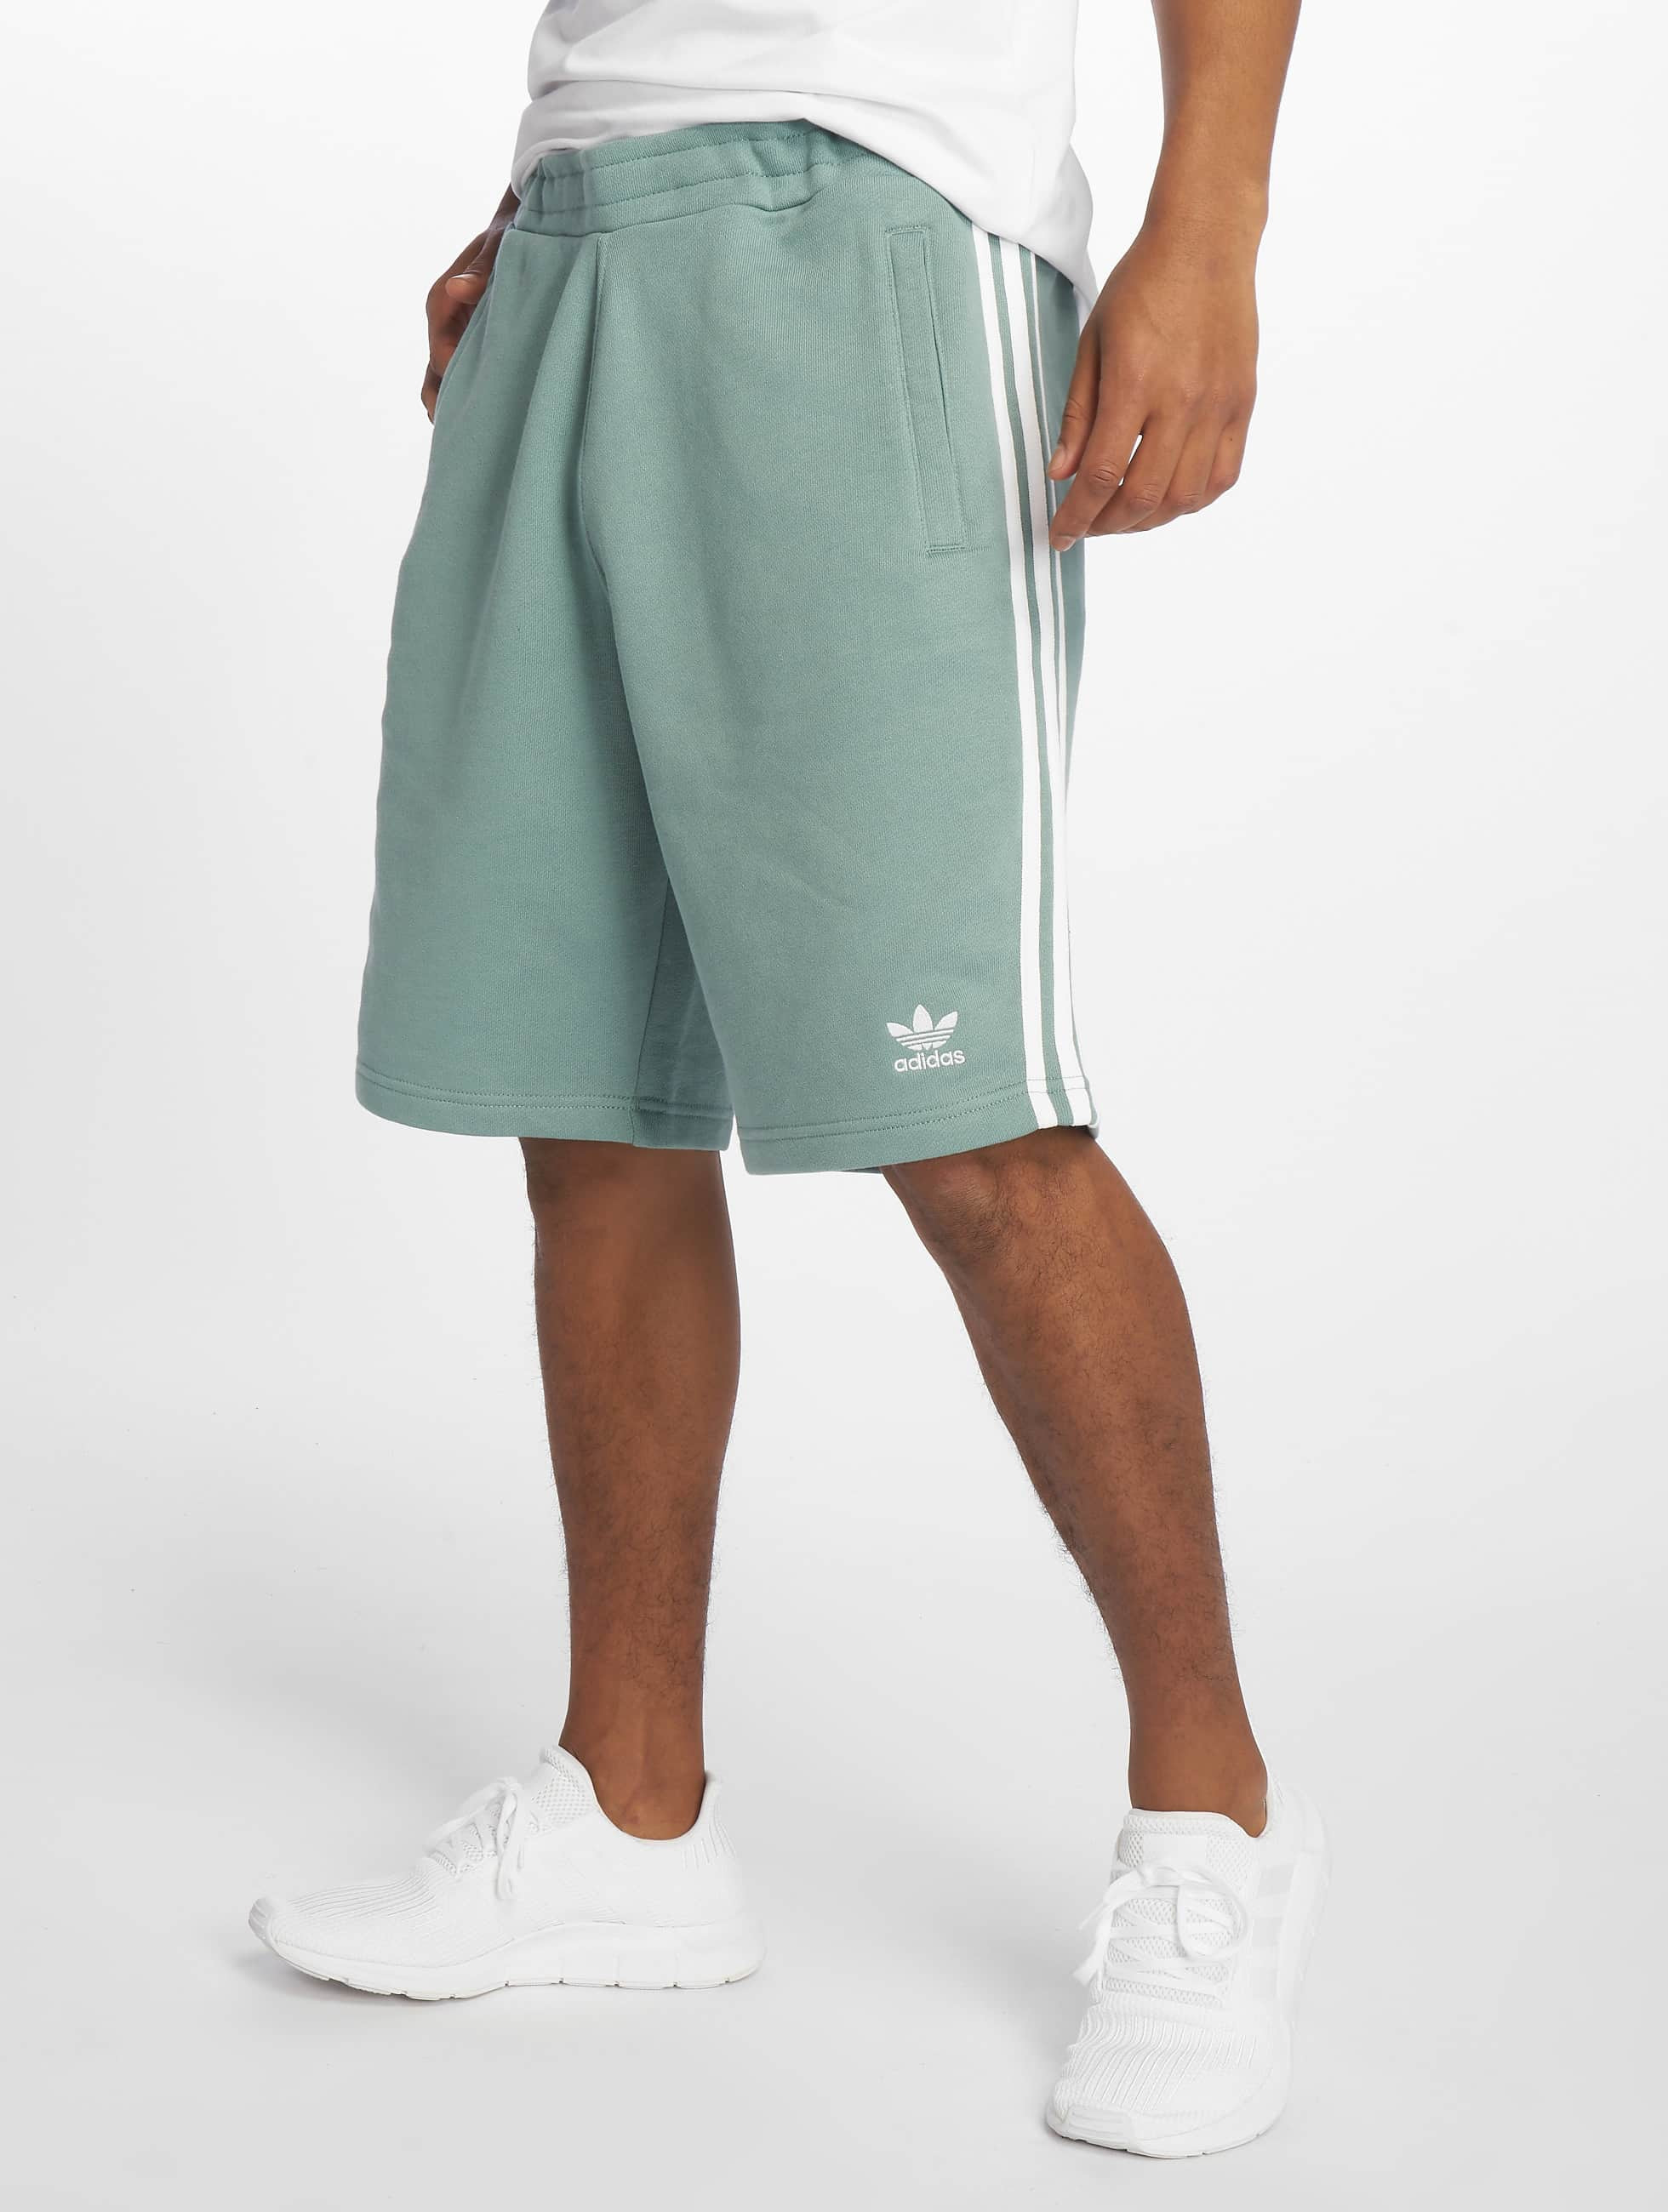 40e9c8233b5 adidas originals broek / shorts 3-Stripe in turquois 599337